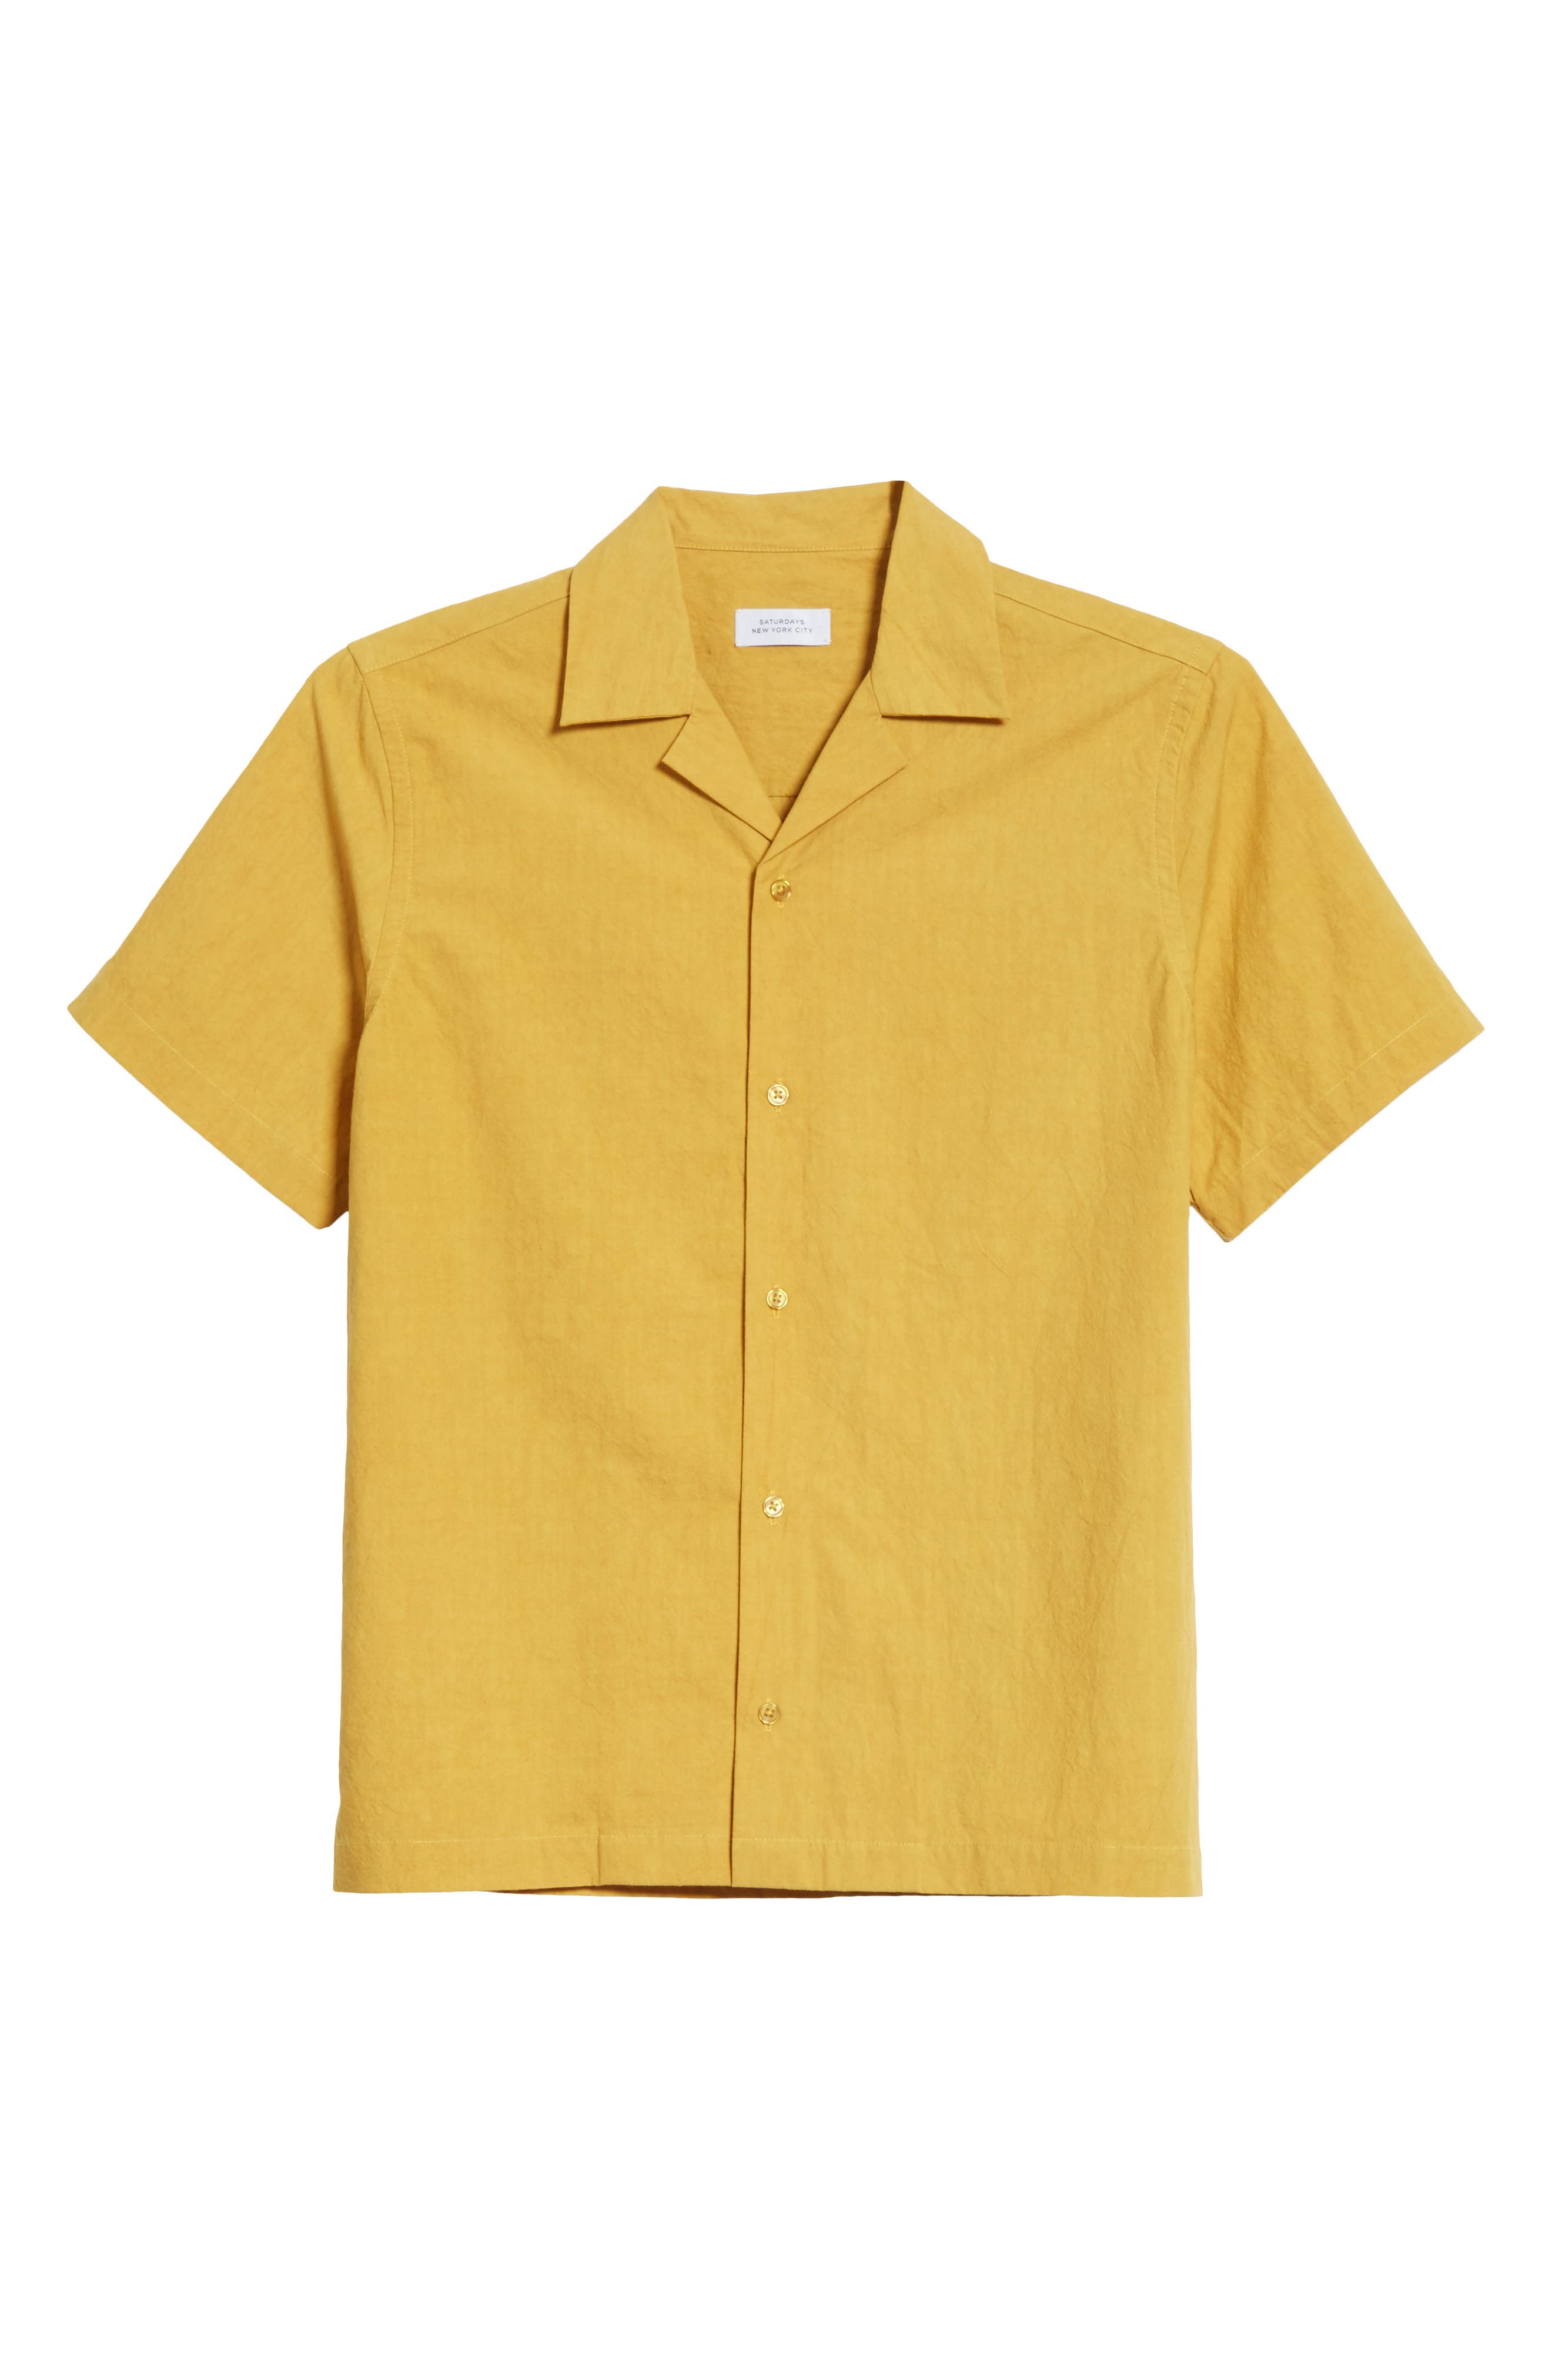 Canty Woven Camp Shirt,                             Alternate thumbnail 6, color,                             Dusty Amber